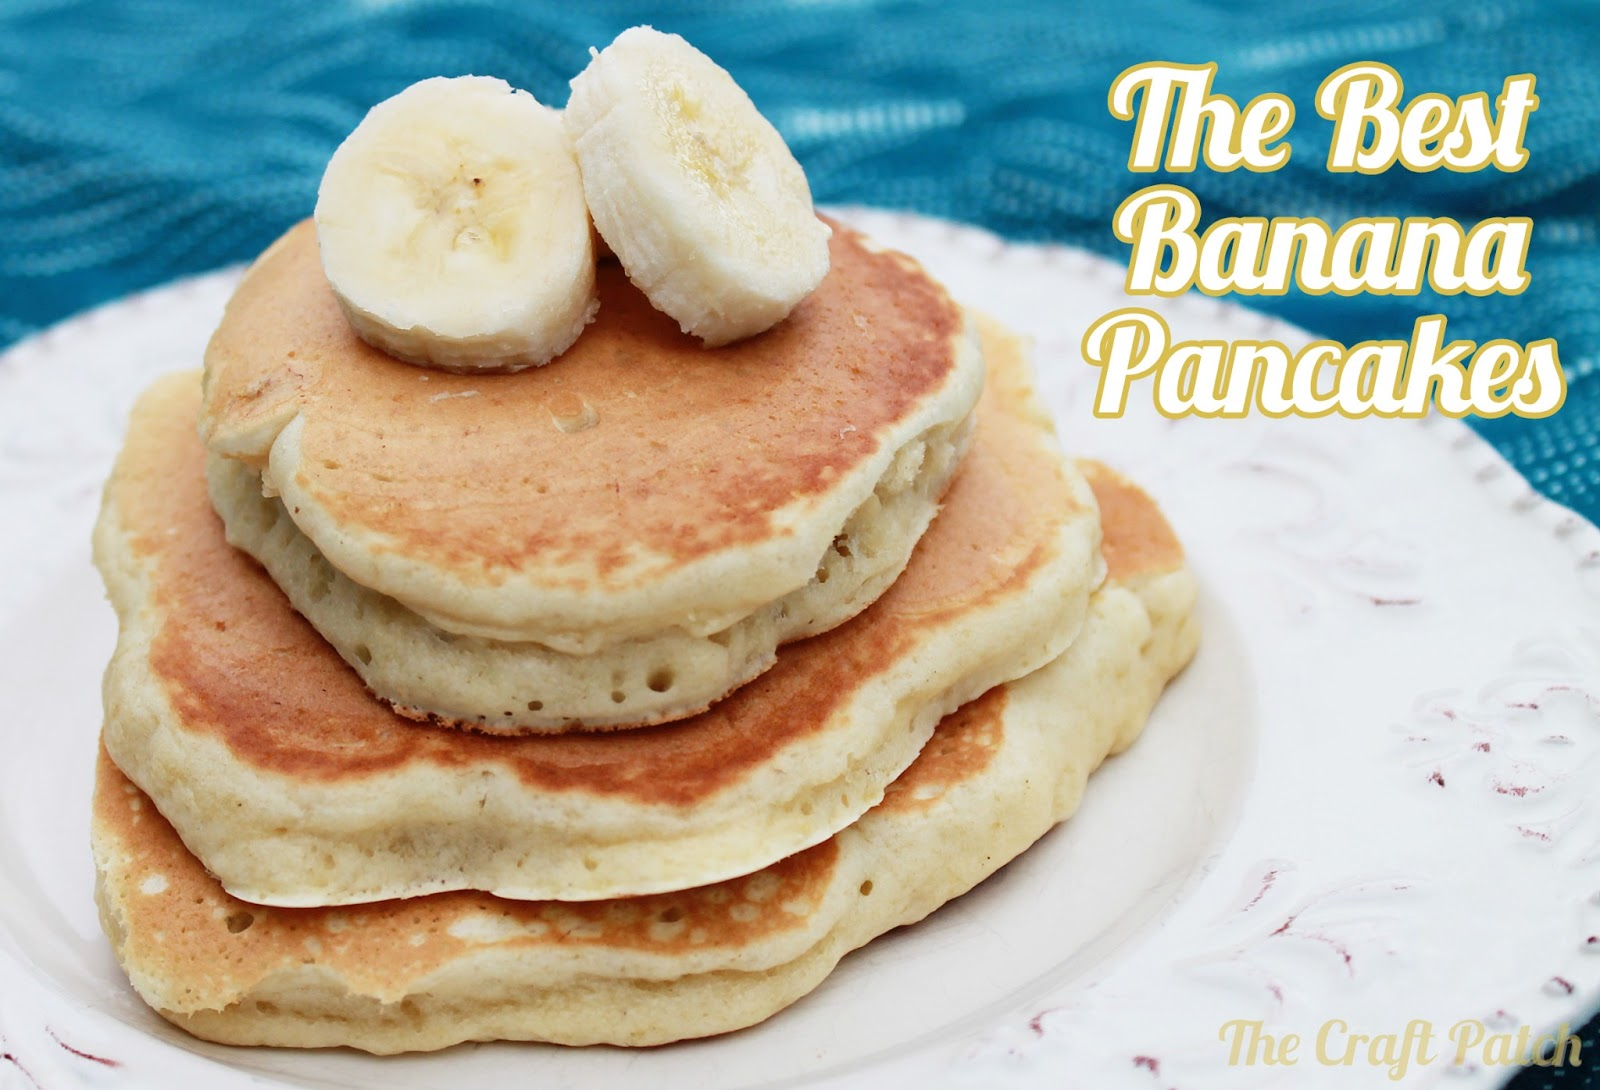 The Craft Patch: The Best Banana Pancakes